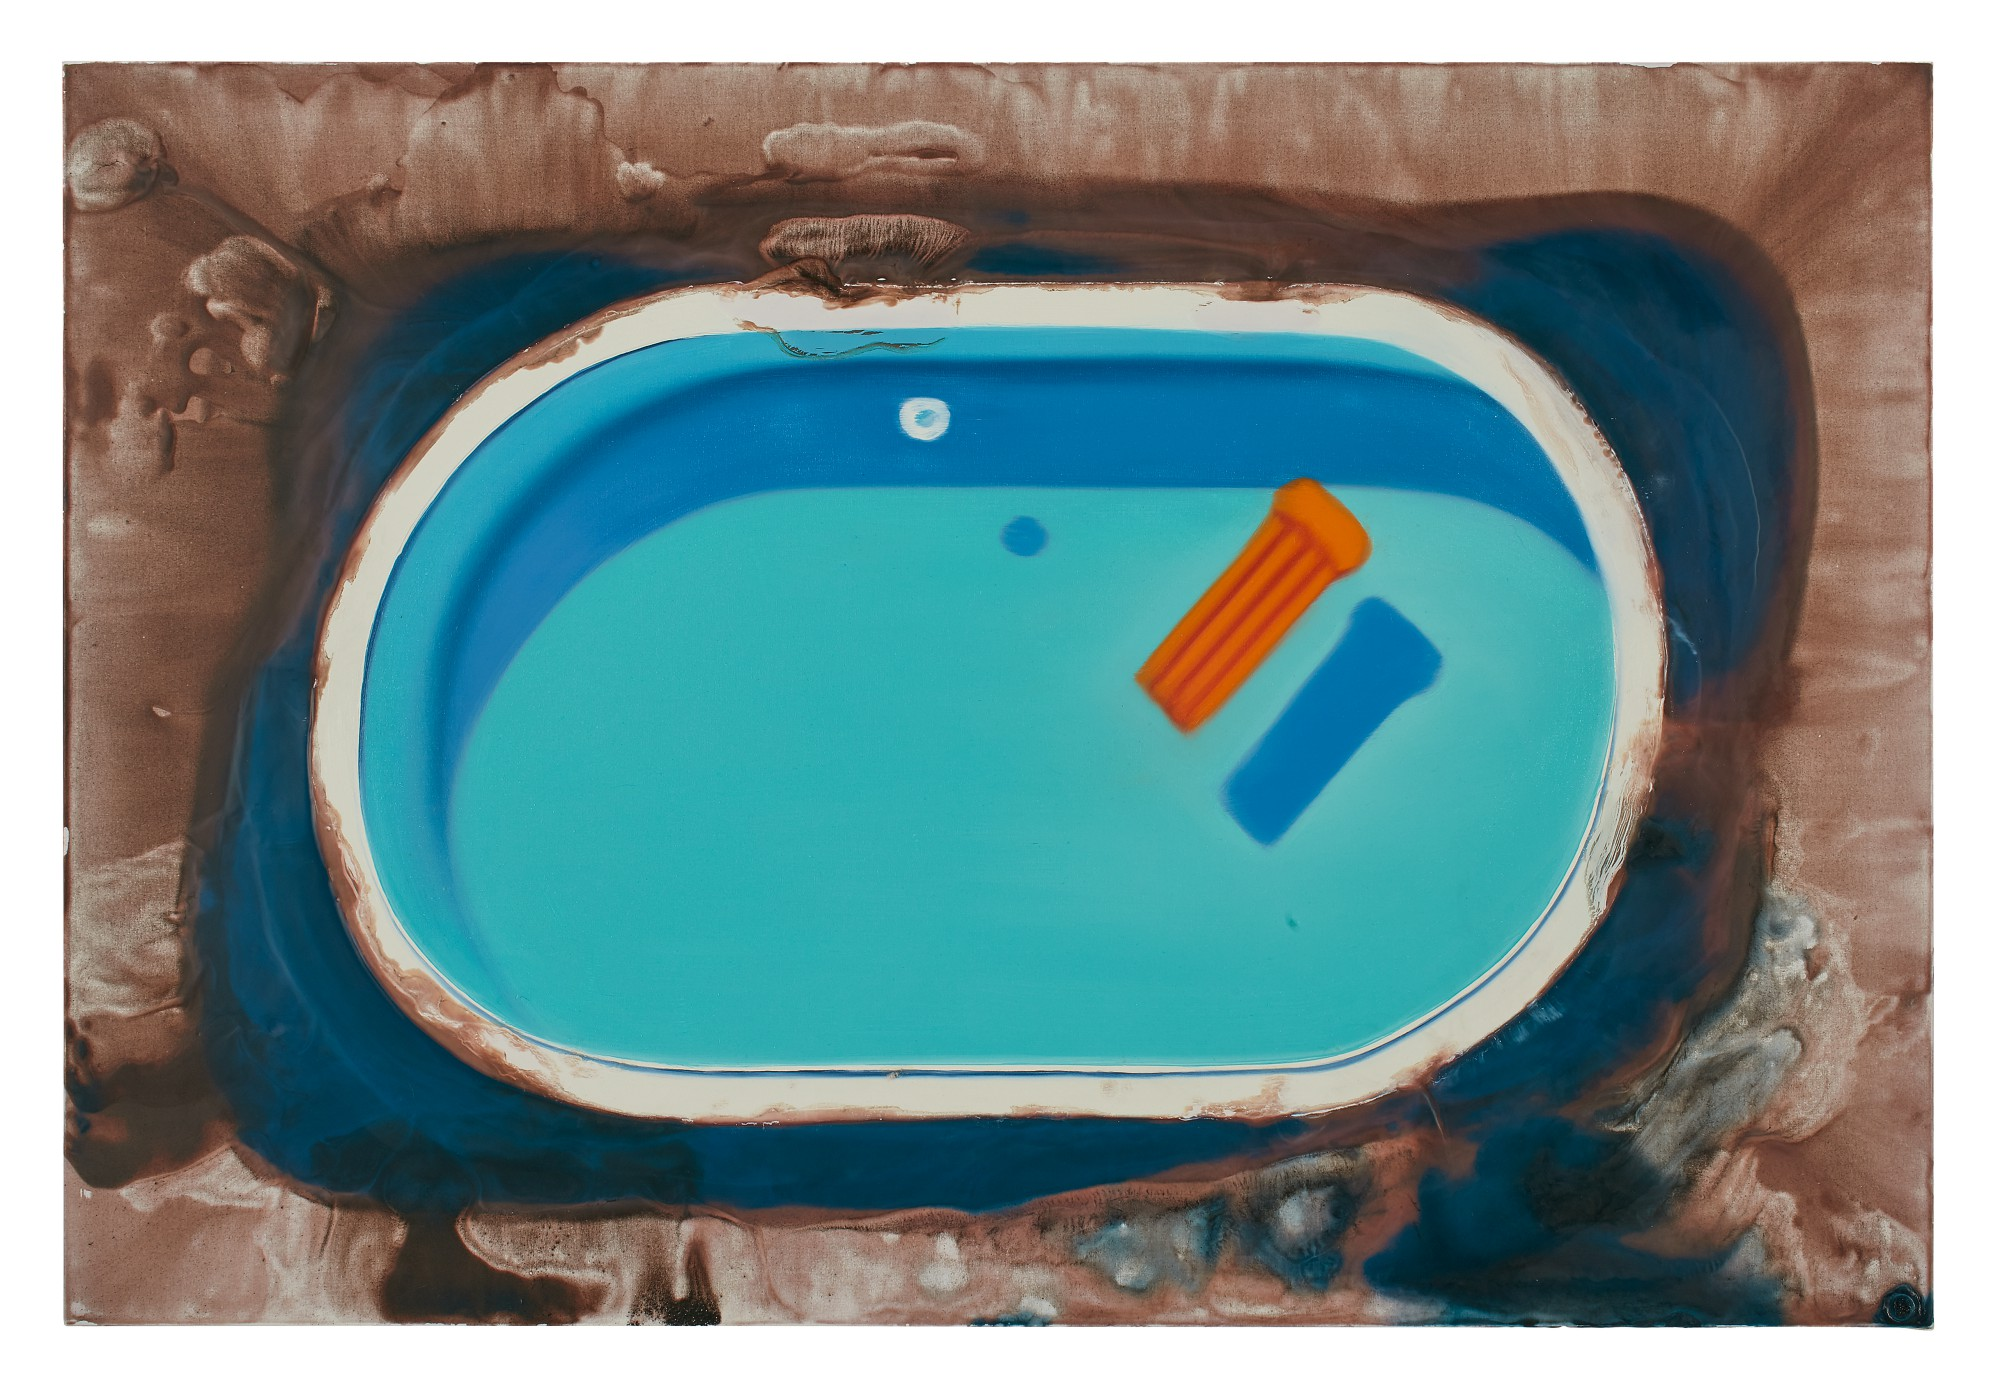 DIRK SKREBER | BLUE FLOOD WITH POOL